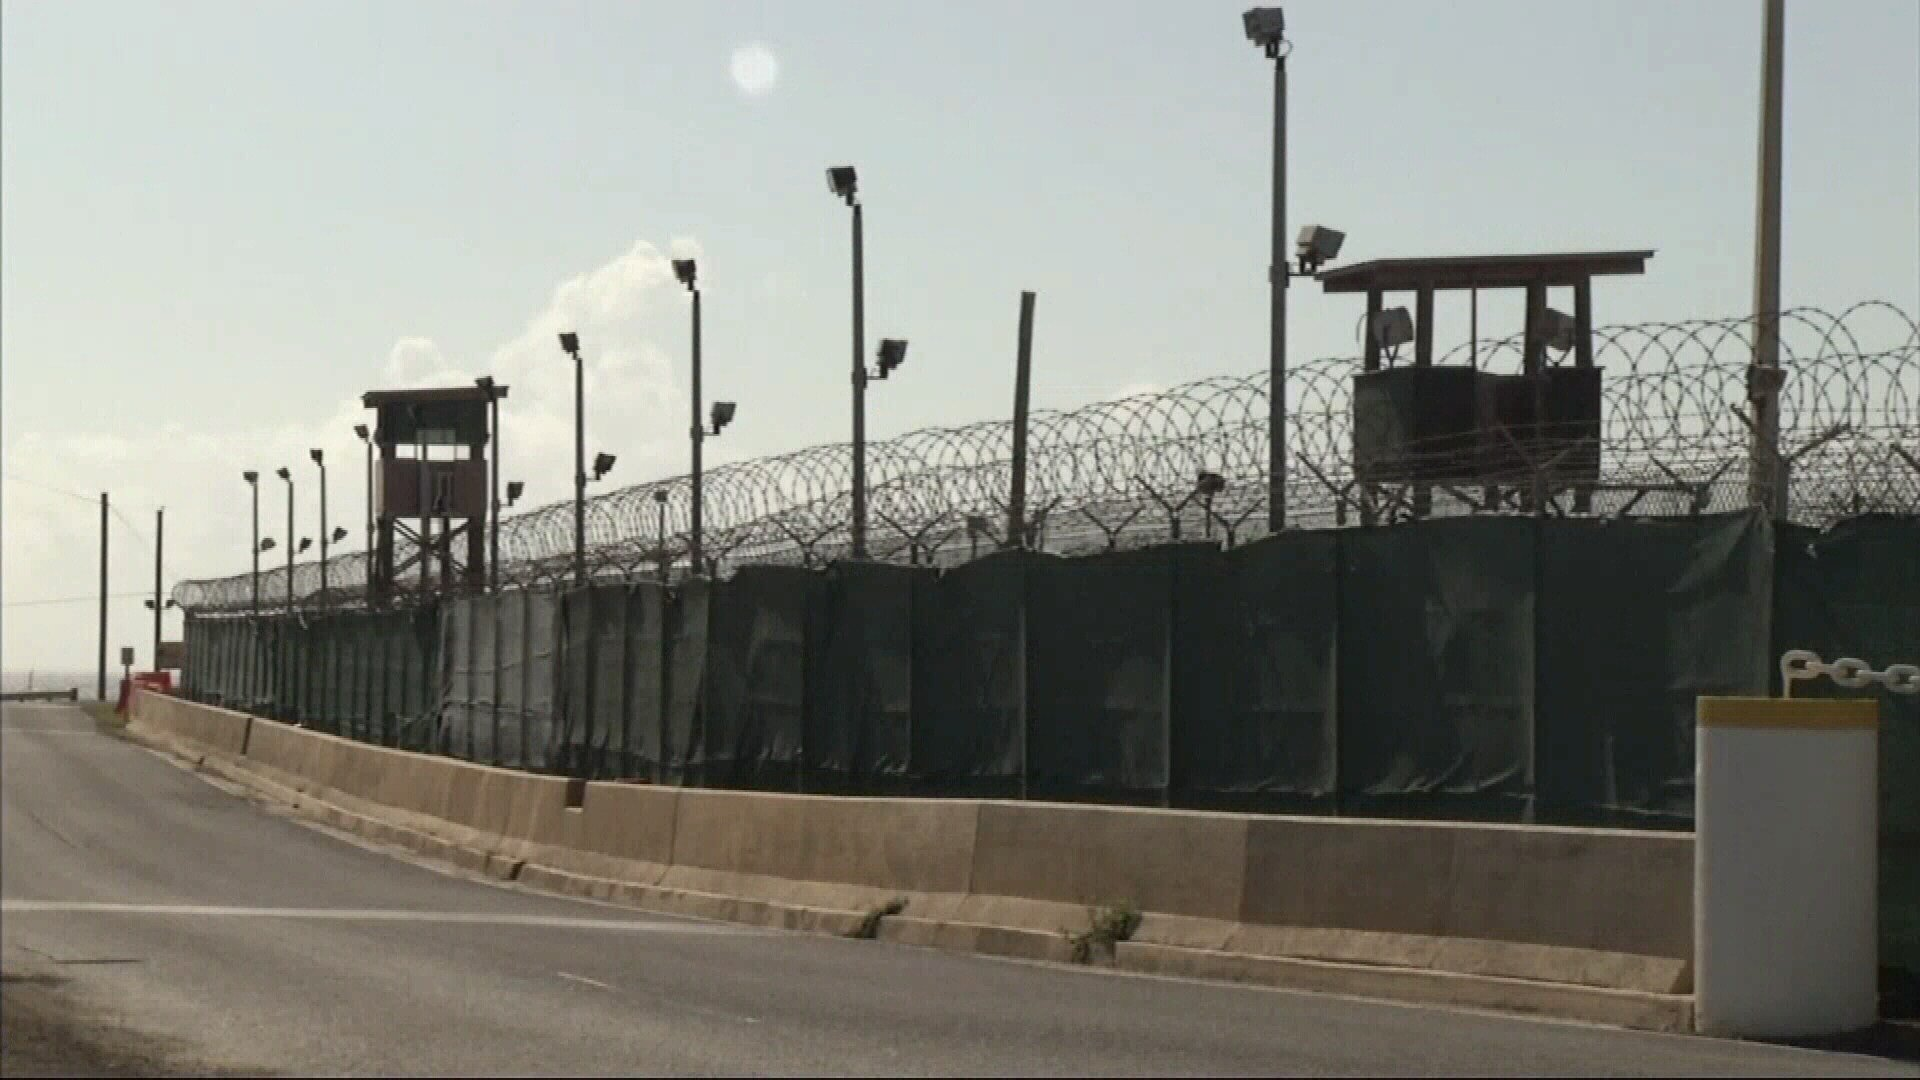 A former Guantanamo Bay guard now living in Corpus Christi describes his experiences at the military detention facility.